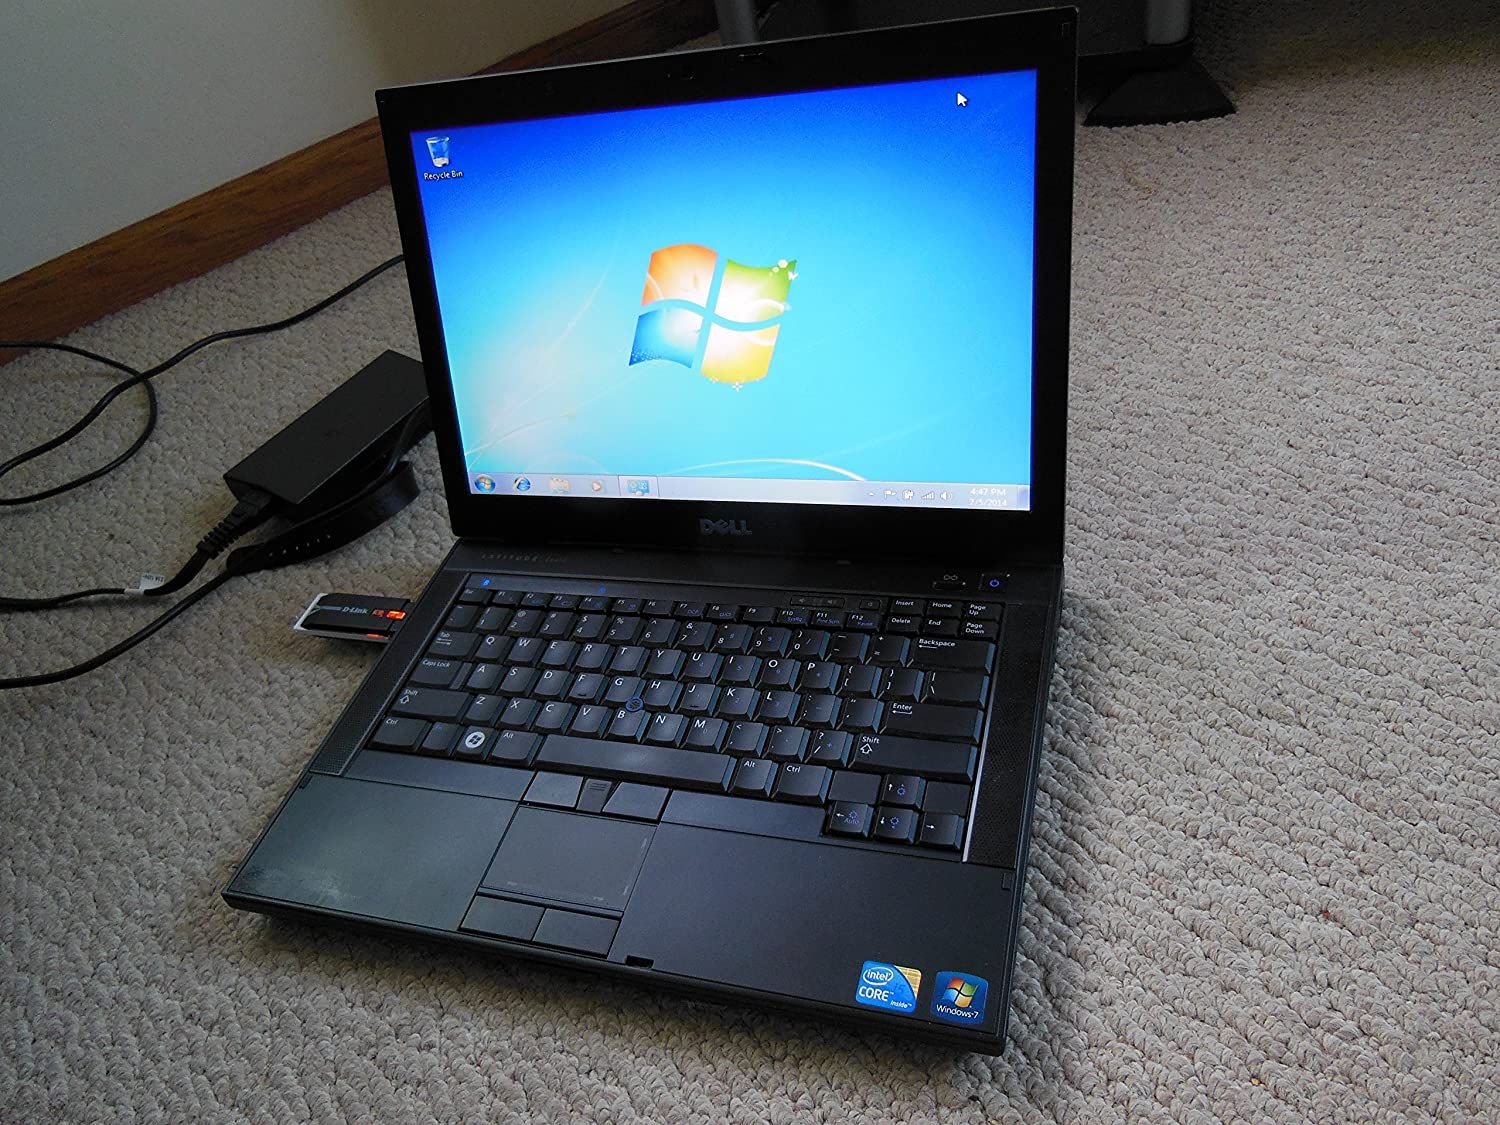 Dell Laptop Latitude E6410 - Core I5 2.40ghz - 2gb RAM - 160gb Hard Drive - Dvdrw - Windows 7 Pro